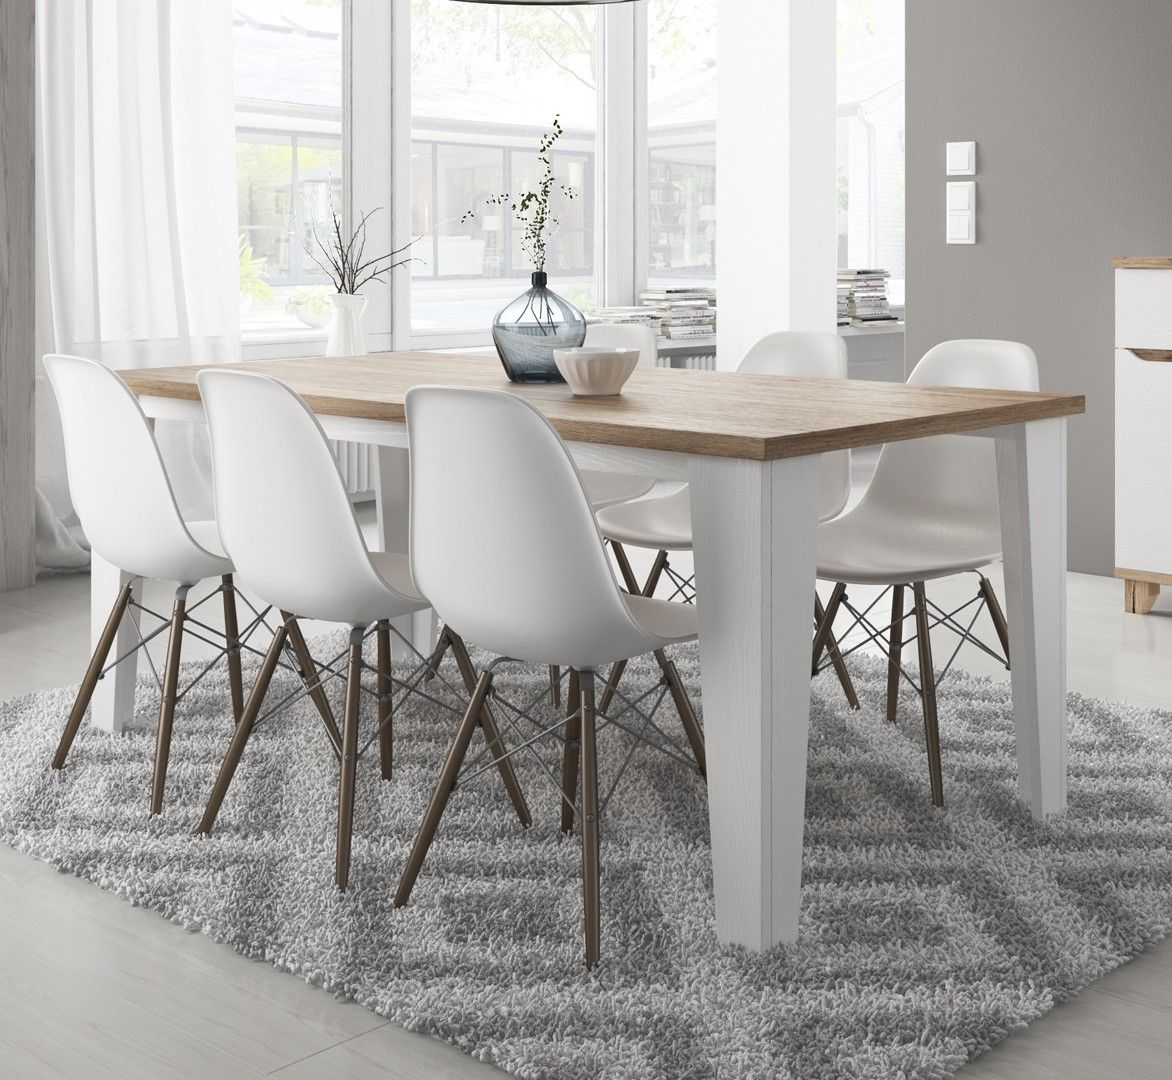 Table de salle manger contemporaine ch ne blanc vein mat melanie table de salle manger - Table de salle a manger contemporaine ...